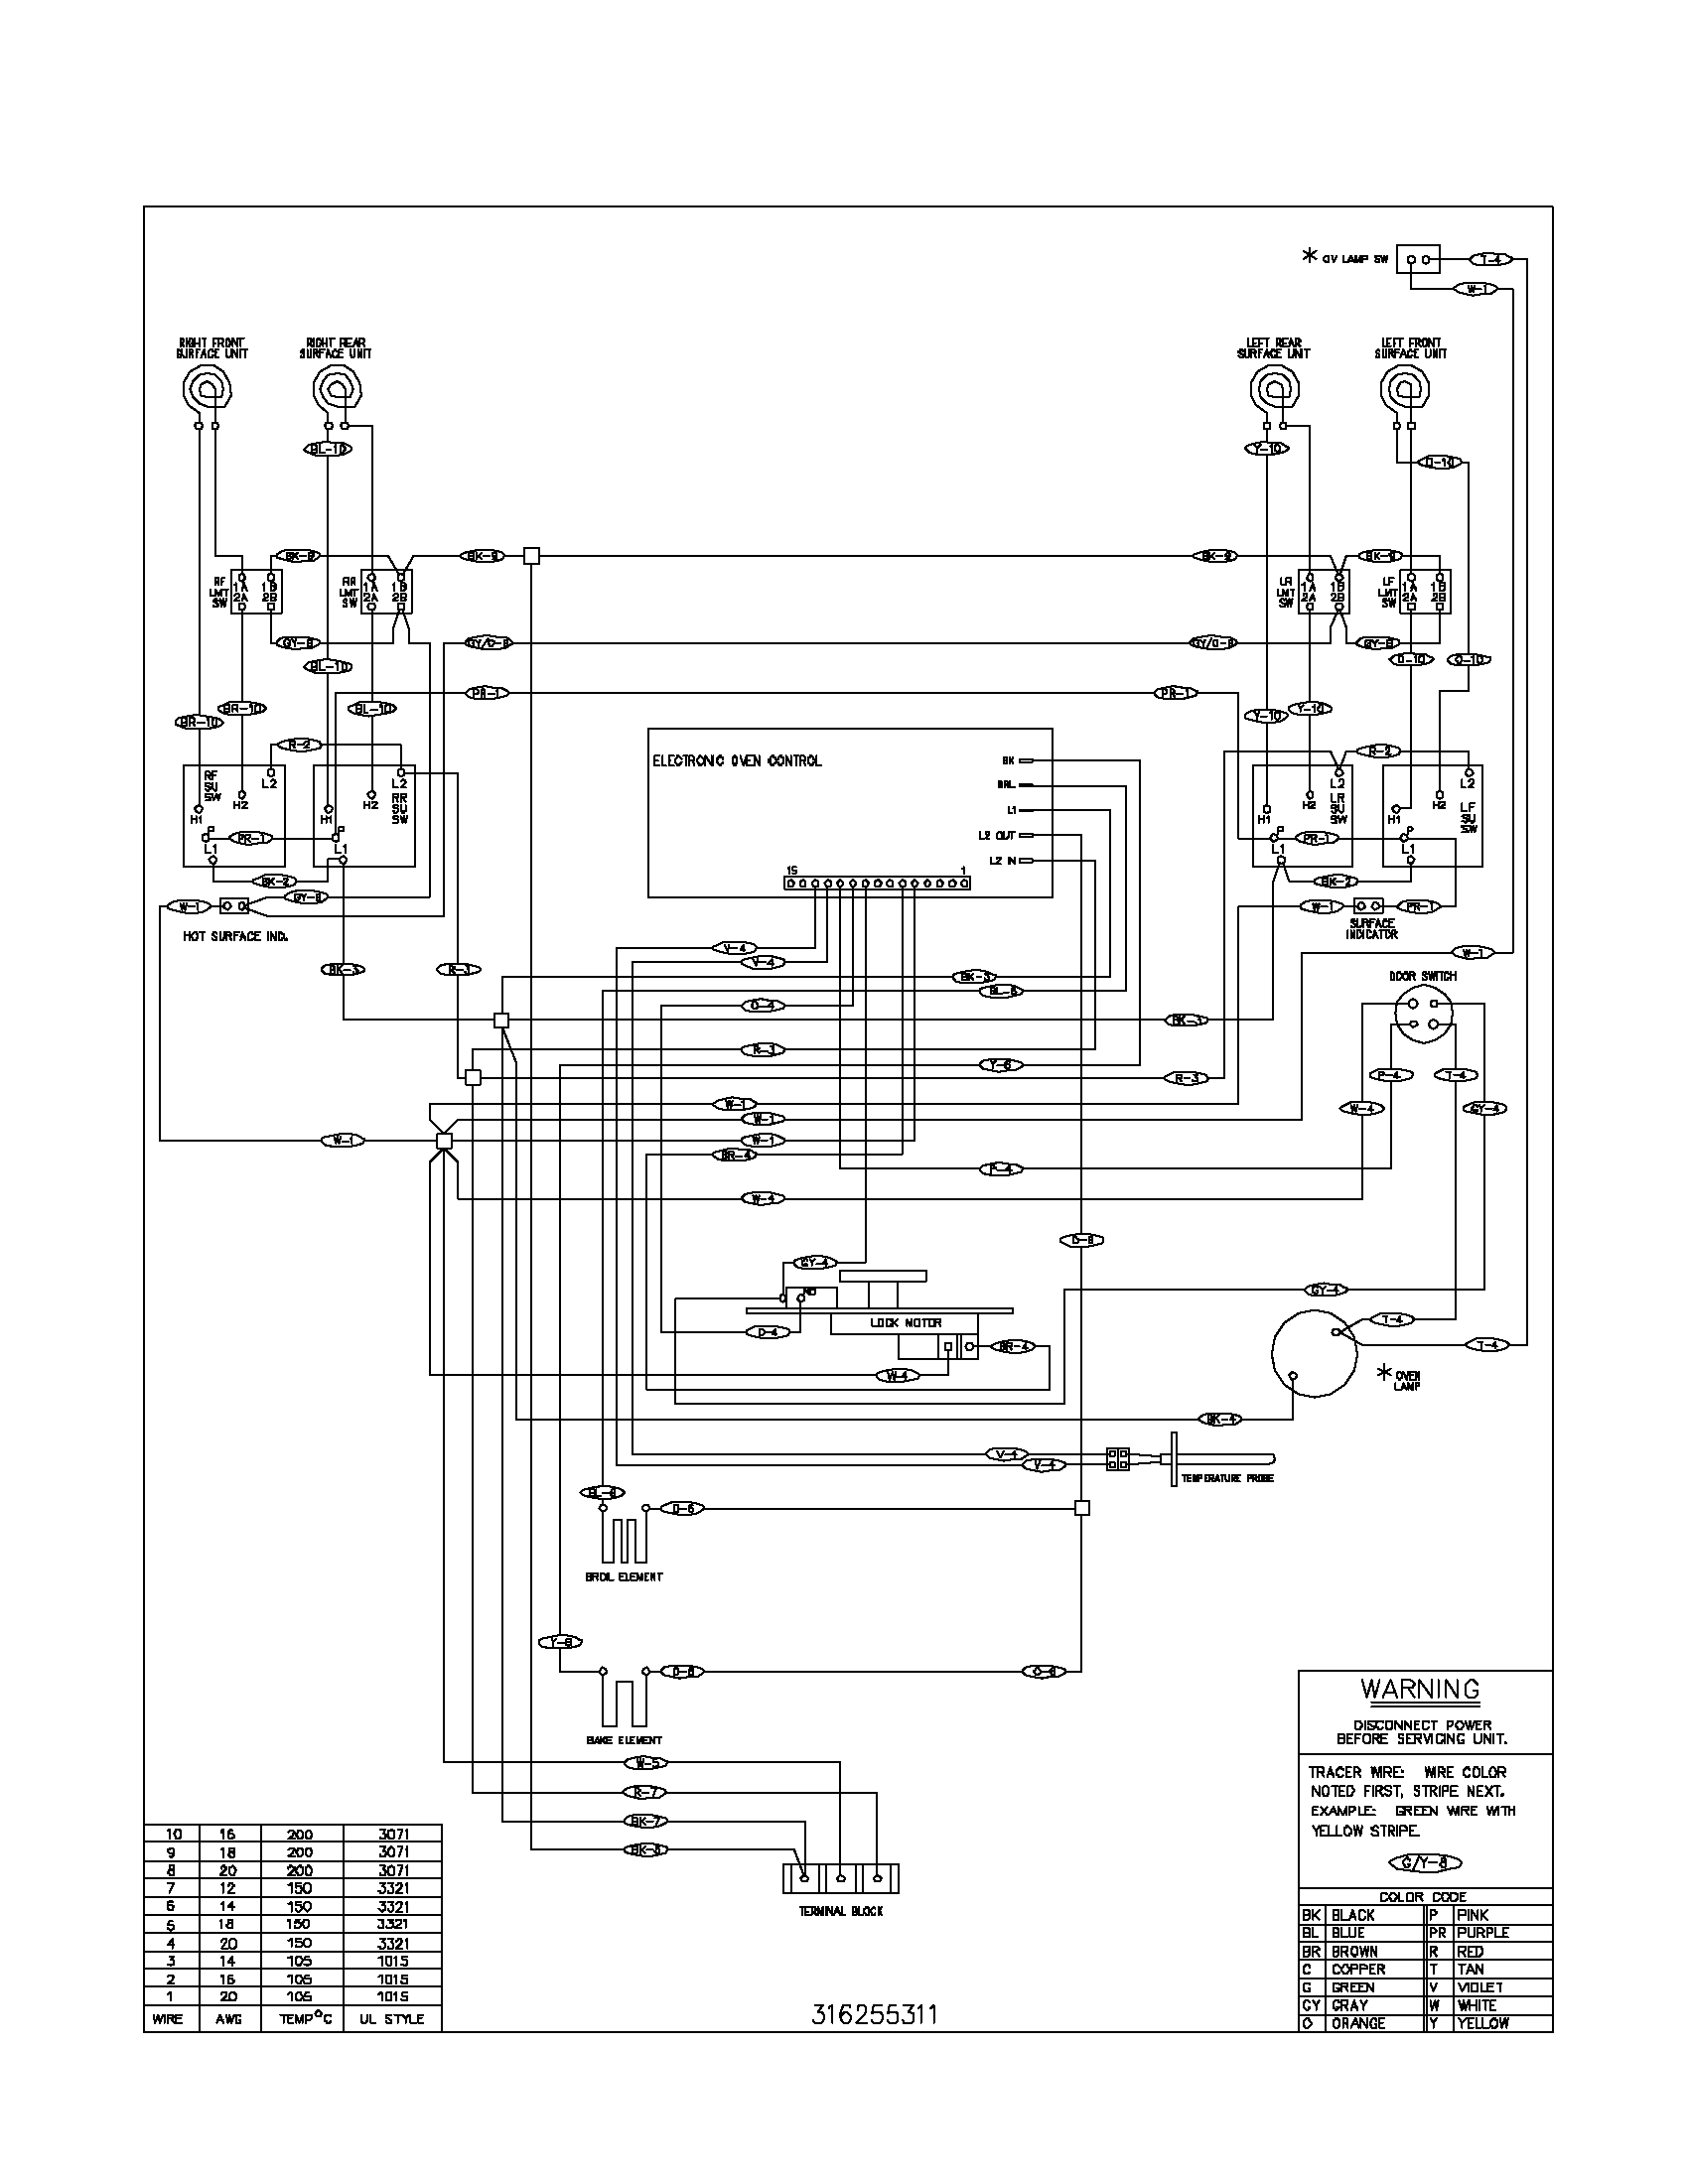 wiring diagram parts?resized665%2C8616ssld1 electric oven wiring diagram & oven wiring diagram bing westinghouse oven element wiring diagram at gsmx.co